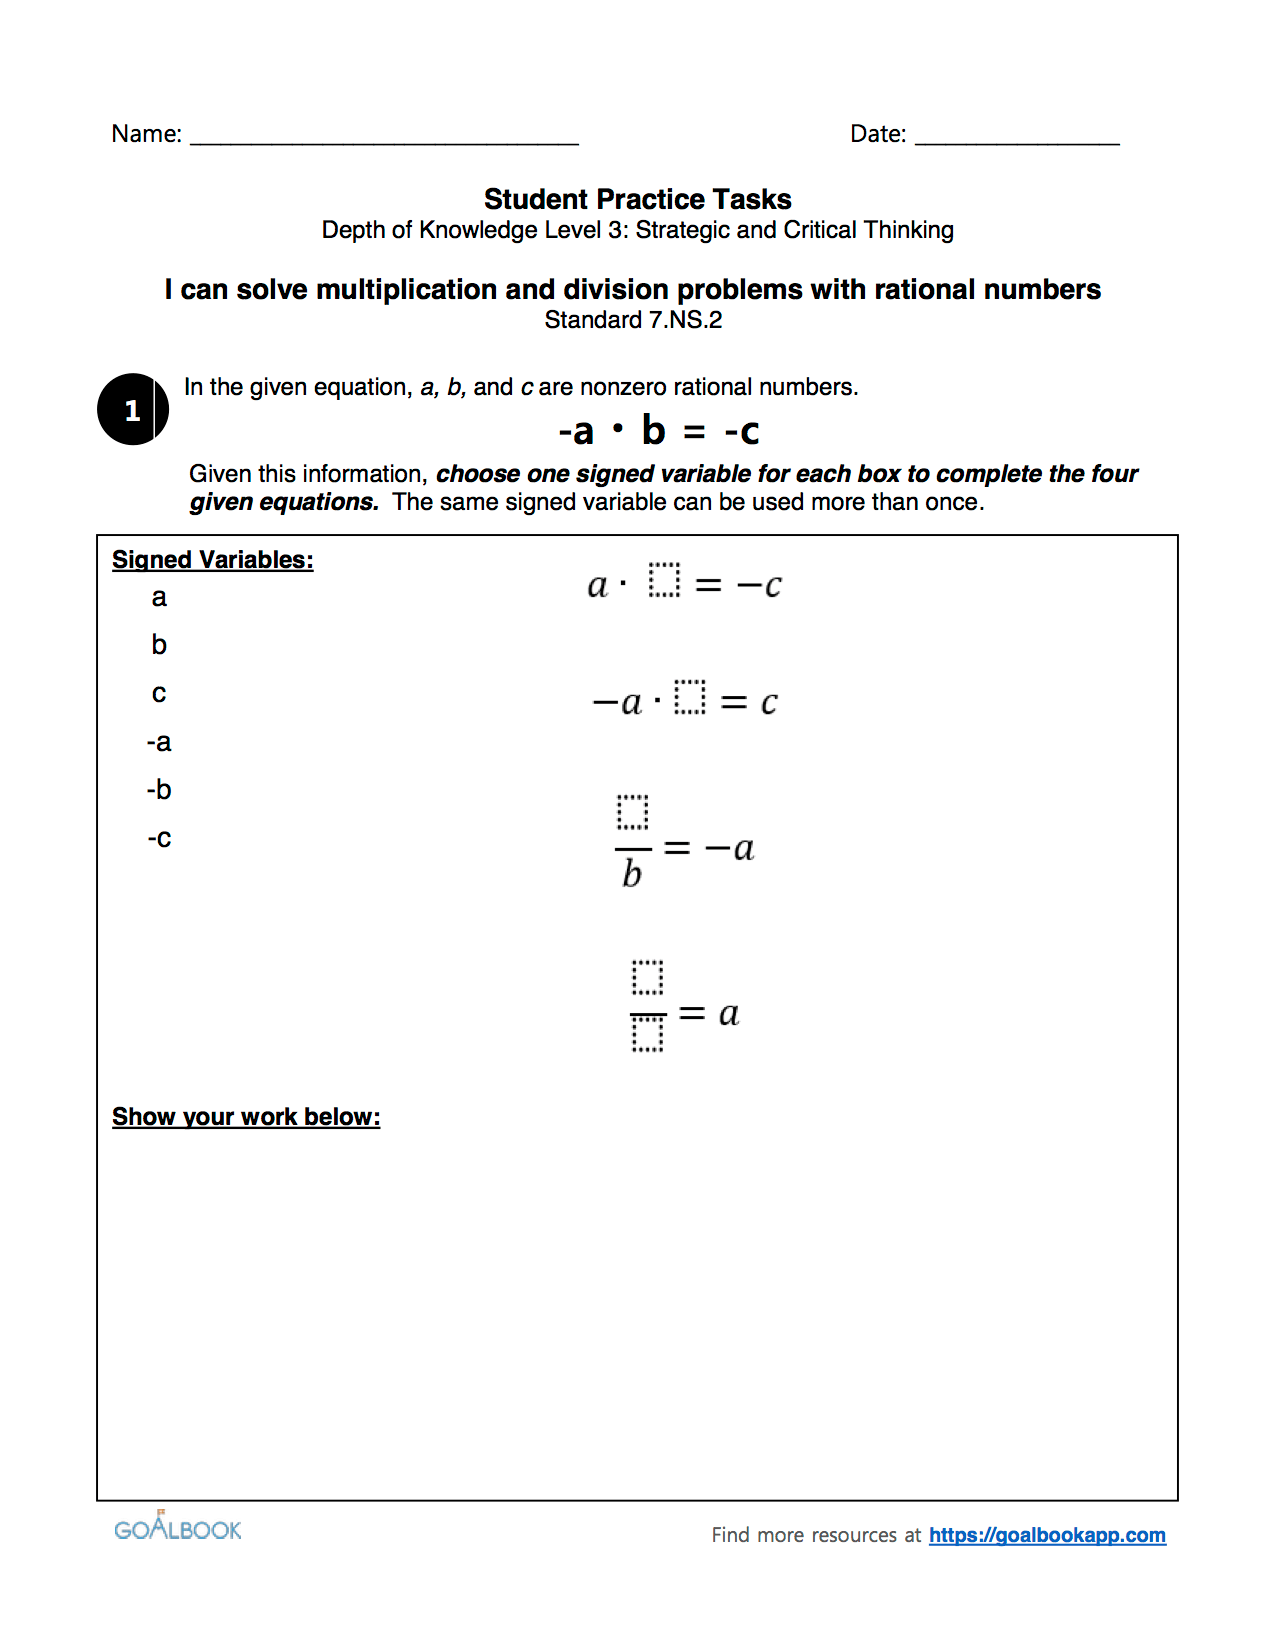 Quick Assessment Solve Multiplication And Division Problems With Rational Numbers